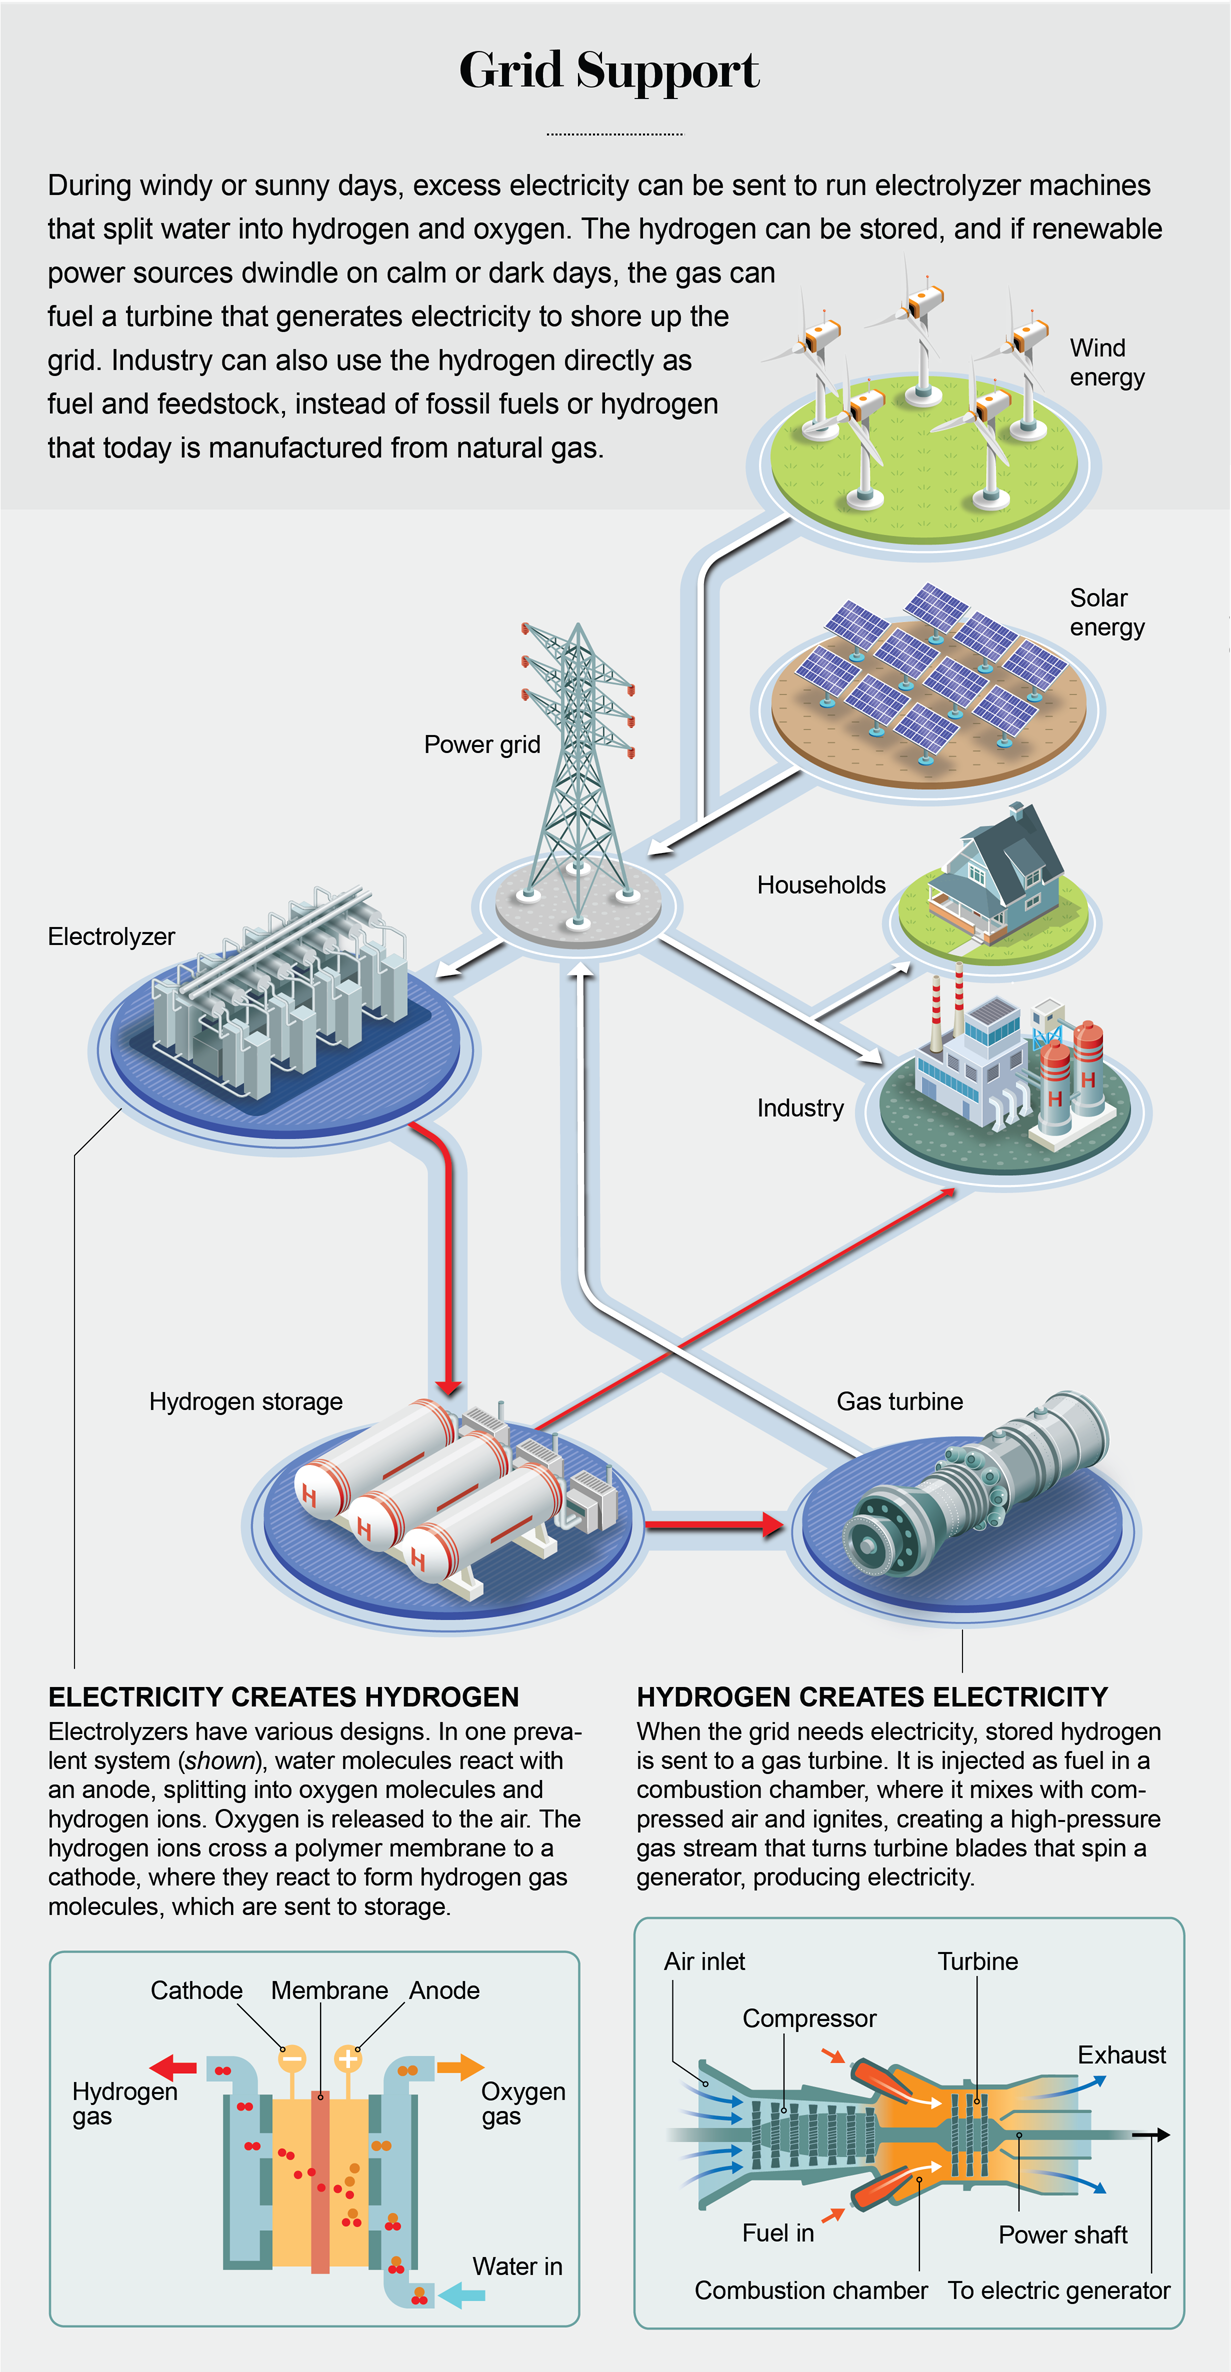 Graphic shows how excess electricity can split water into hydrogen and oxygen: the stored hydrogen can later fuel a turbine when renewable power sources dwindle